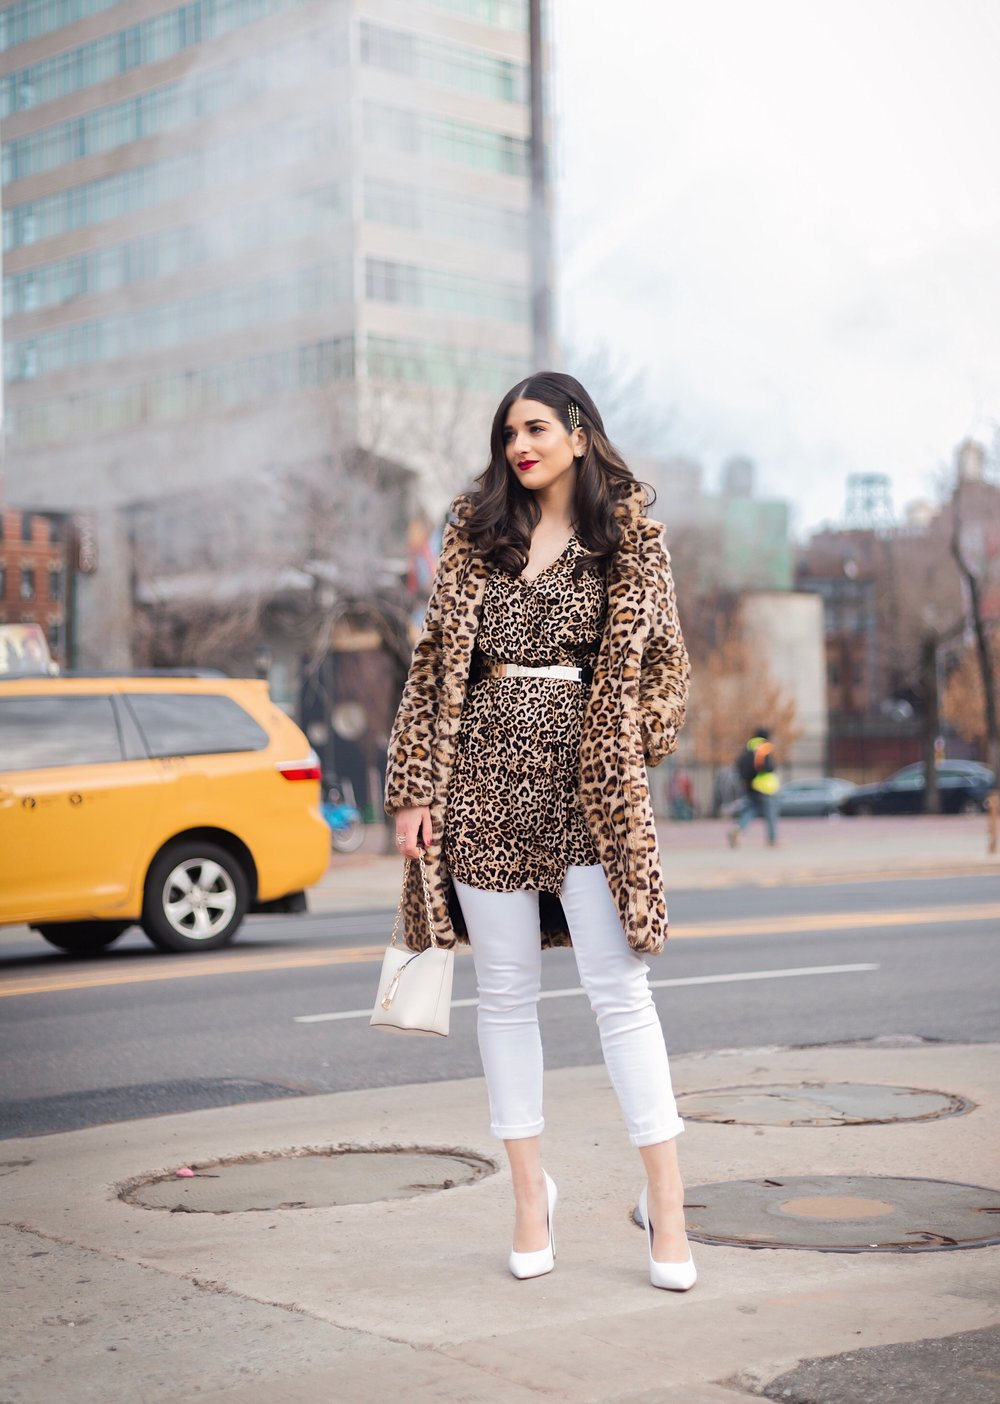 Dressing Up My Democracy Denim Esther Santer Fashion Blog NYC Street Style Blogger Outfit OOTD Trendy Shopping White Jeans Leopard Top Coat Inspo Bobby Pins Hair Trend White Heels Wear Chaya Ross Photography Inspiration Gold Belt Cream Chain Small Bag.jpg